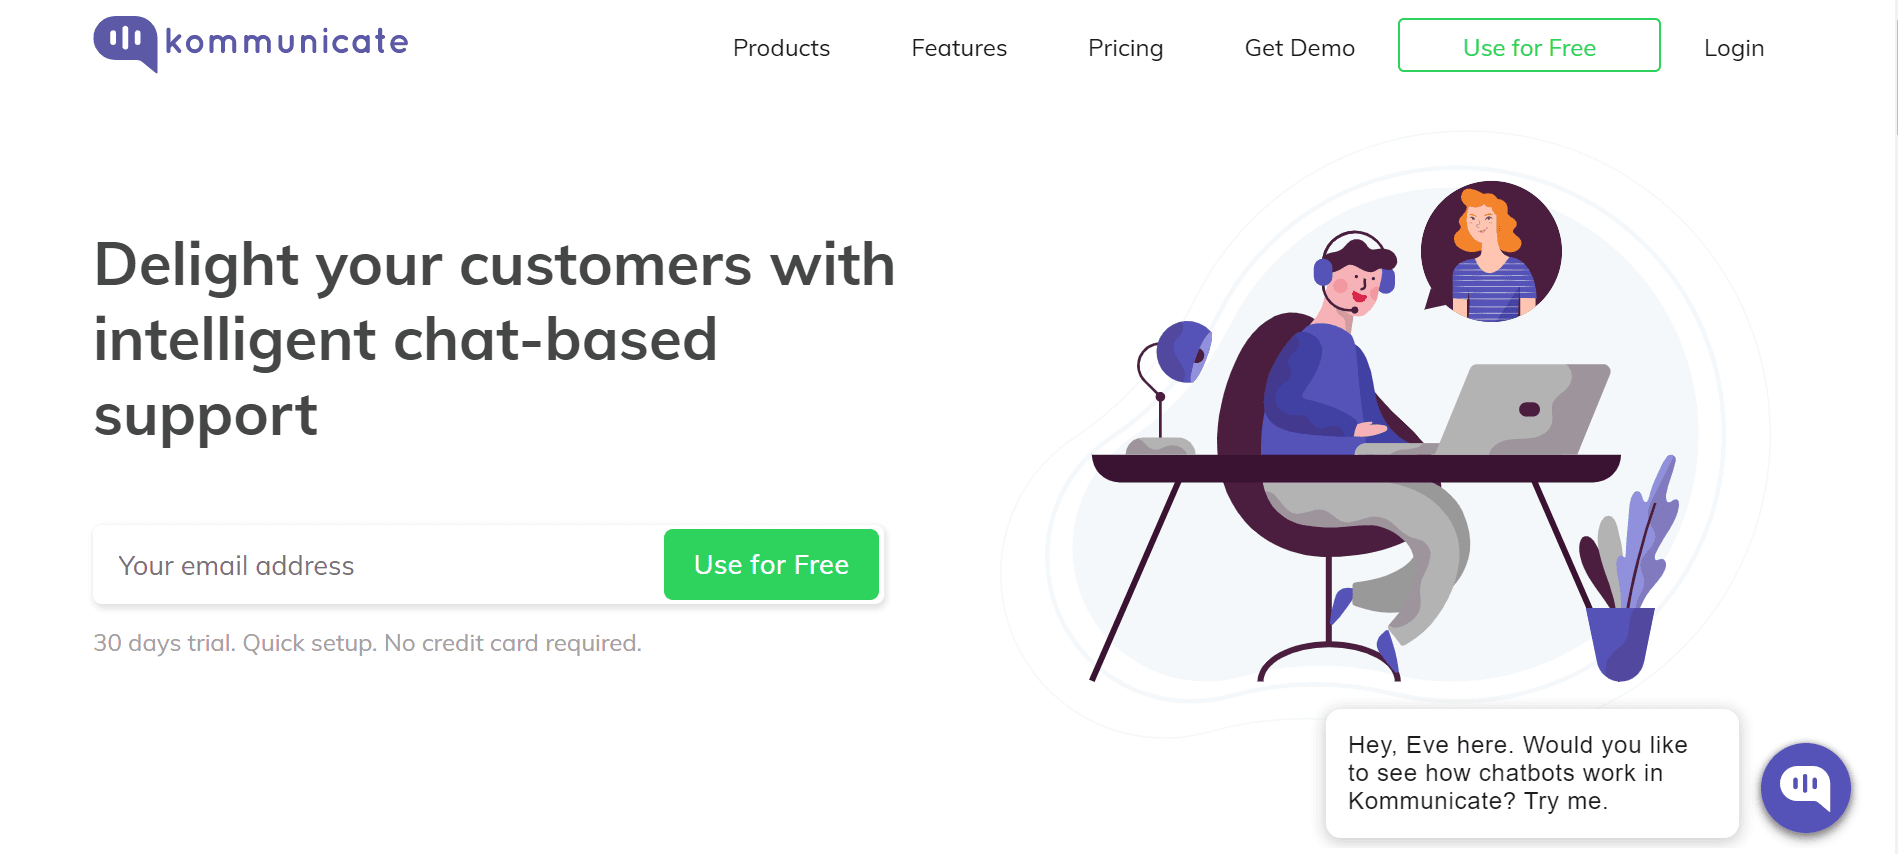 [CASE STUDY] Going Product-Led Growth: How Kommunicate.io drives product adoption without a sales team